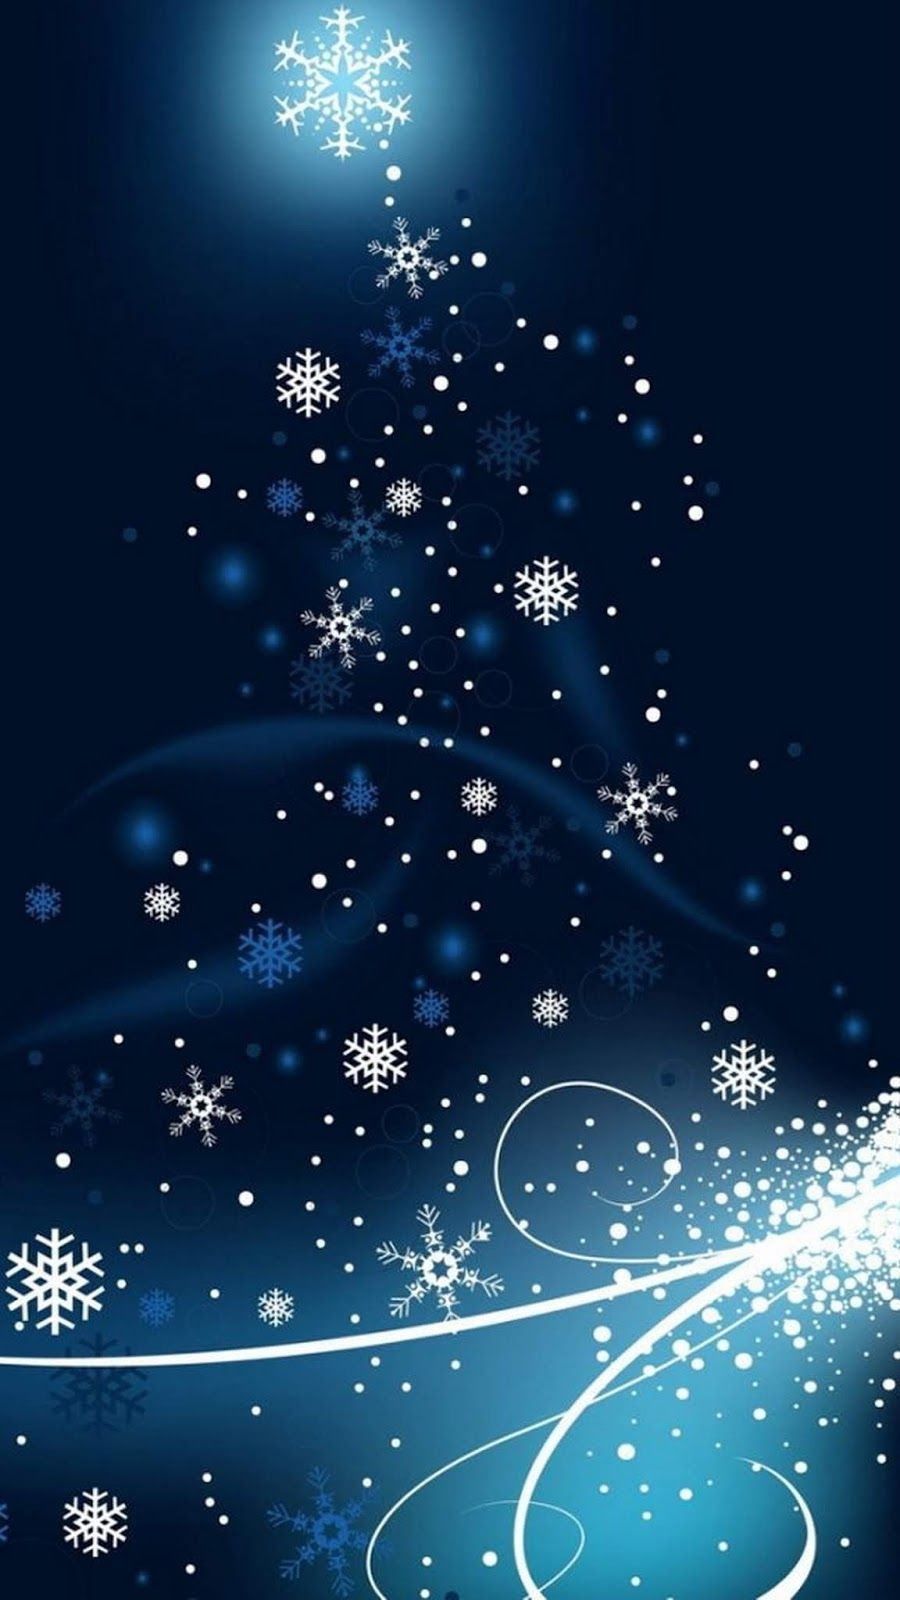 Top 5 Free Animated Christmas Wallpapers For Iphone X Wallpaper